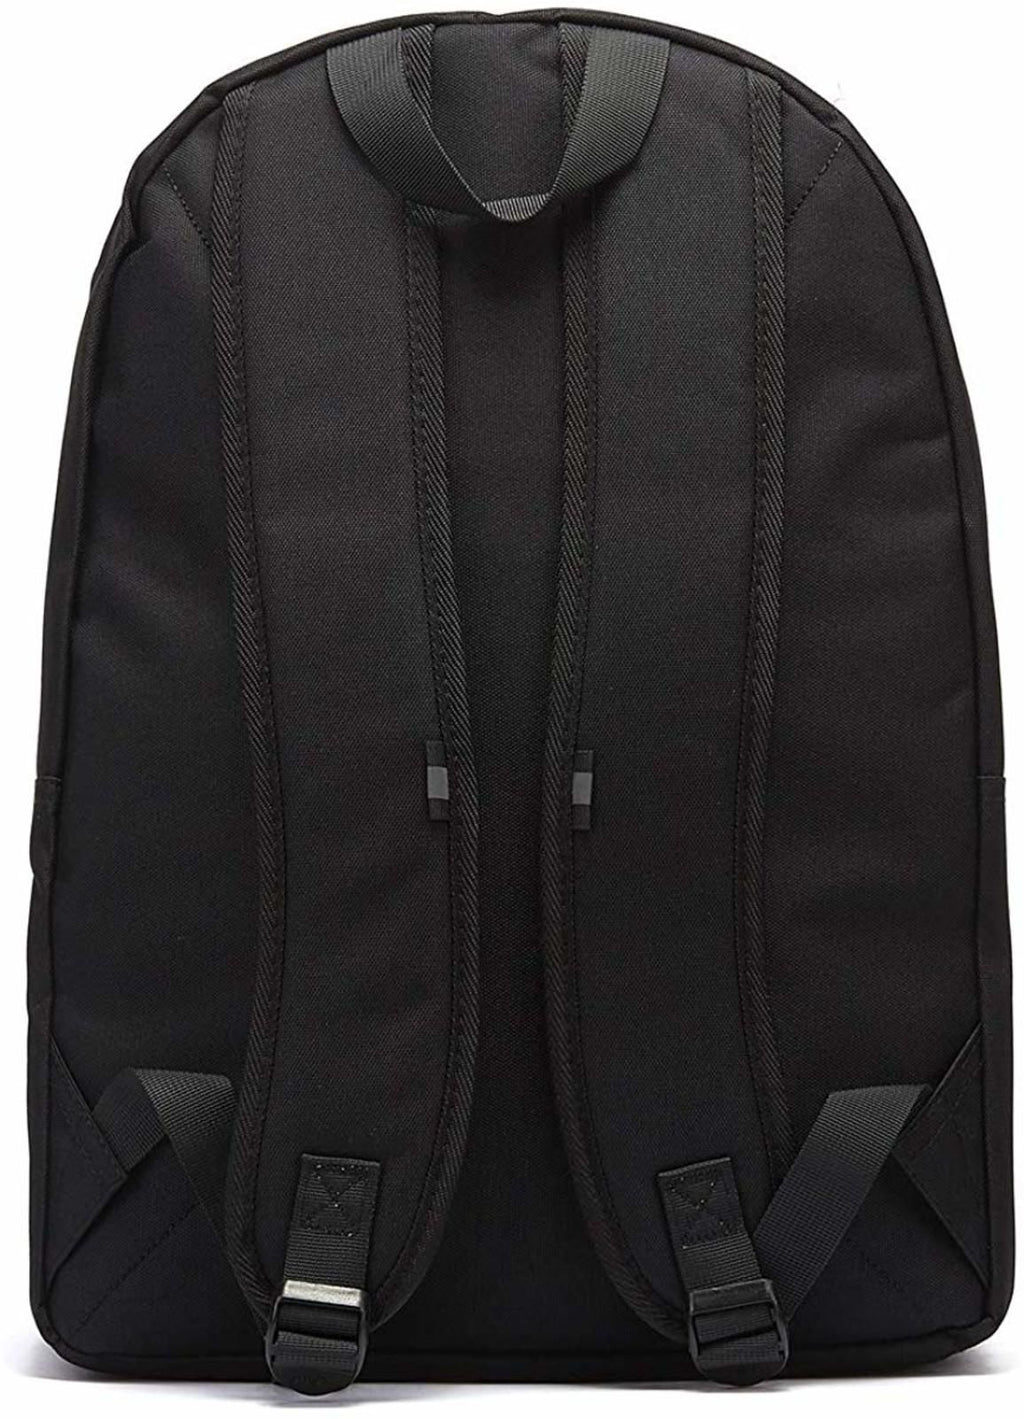 Fila Verdon Backpack Bag Black